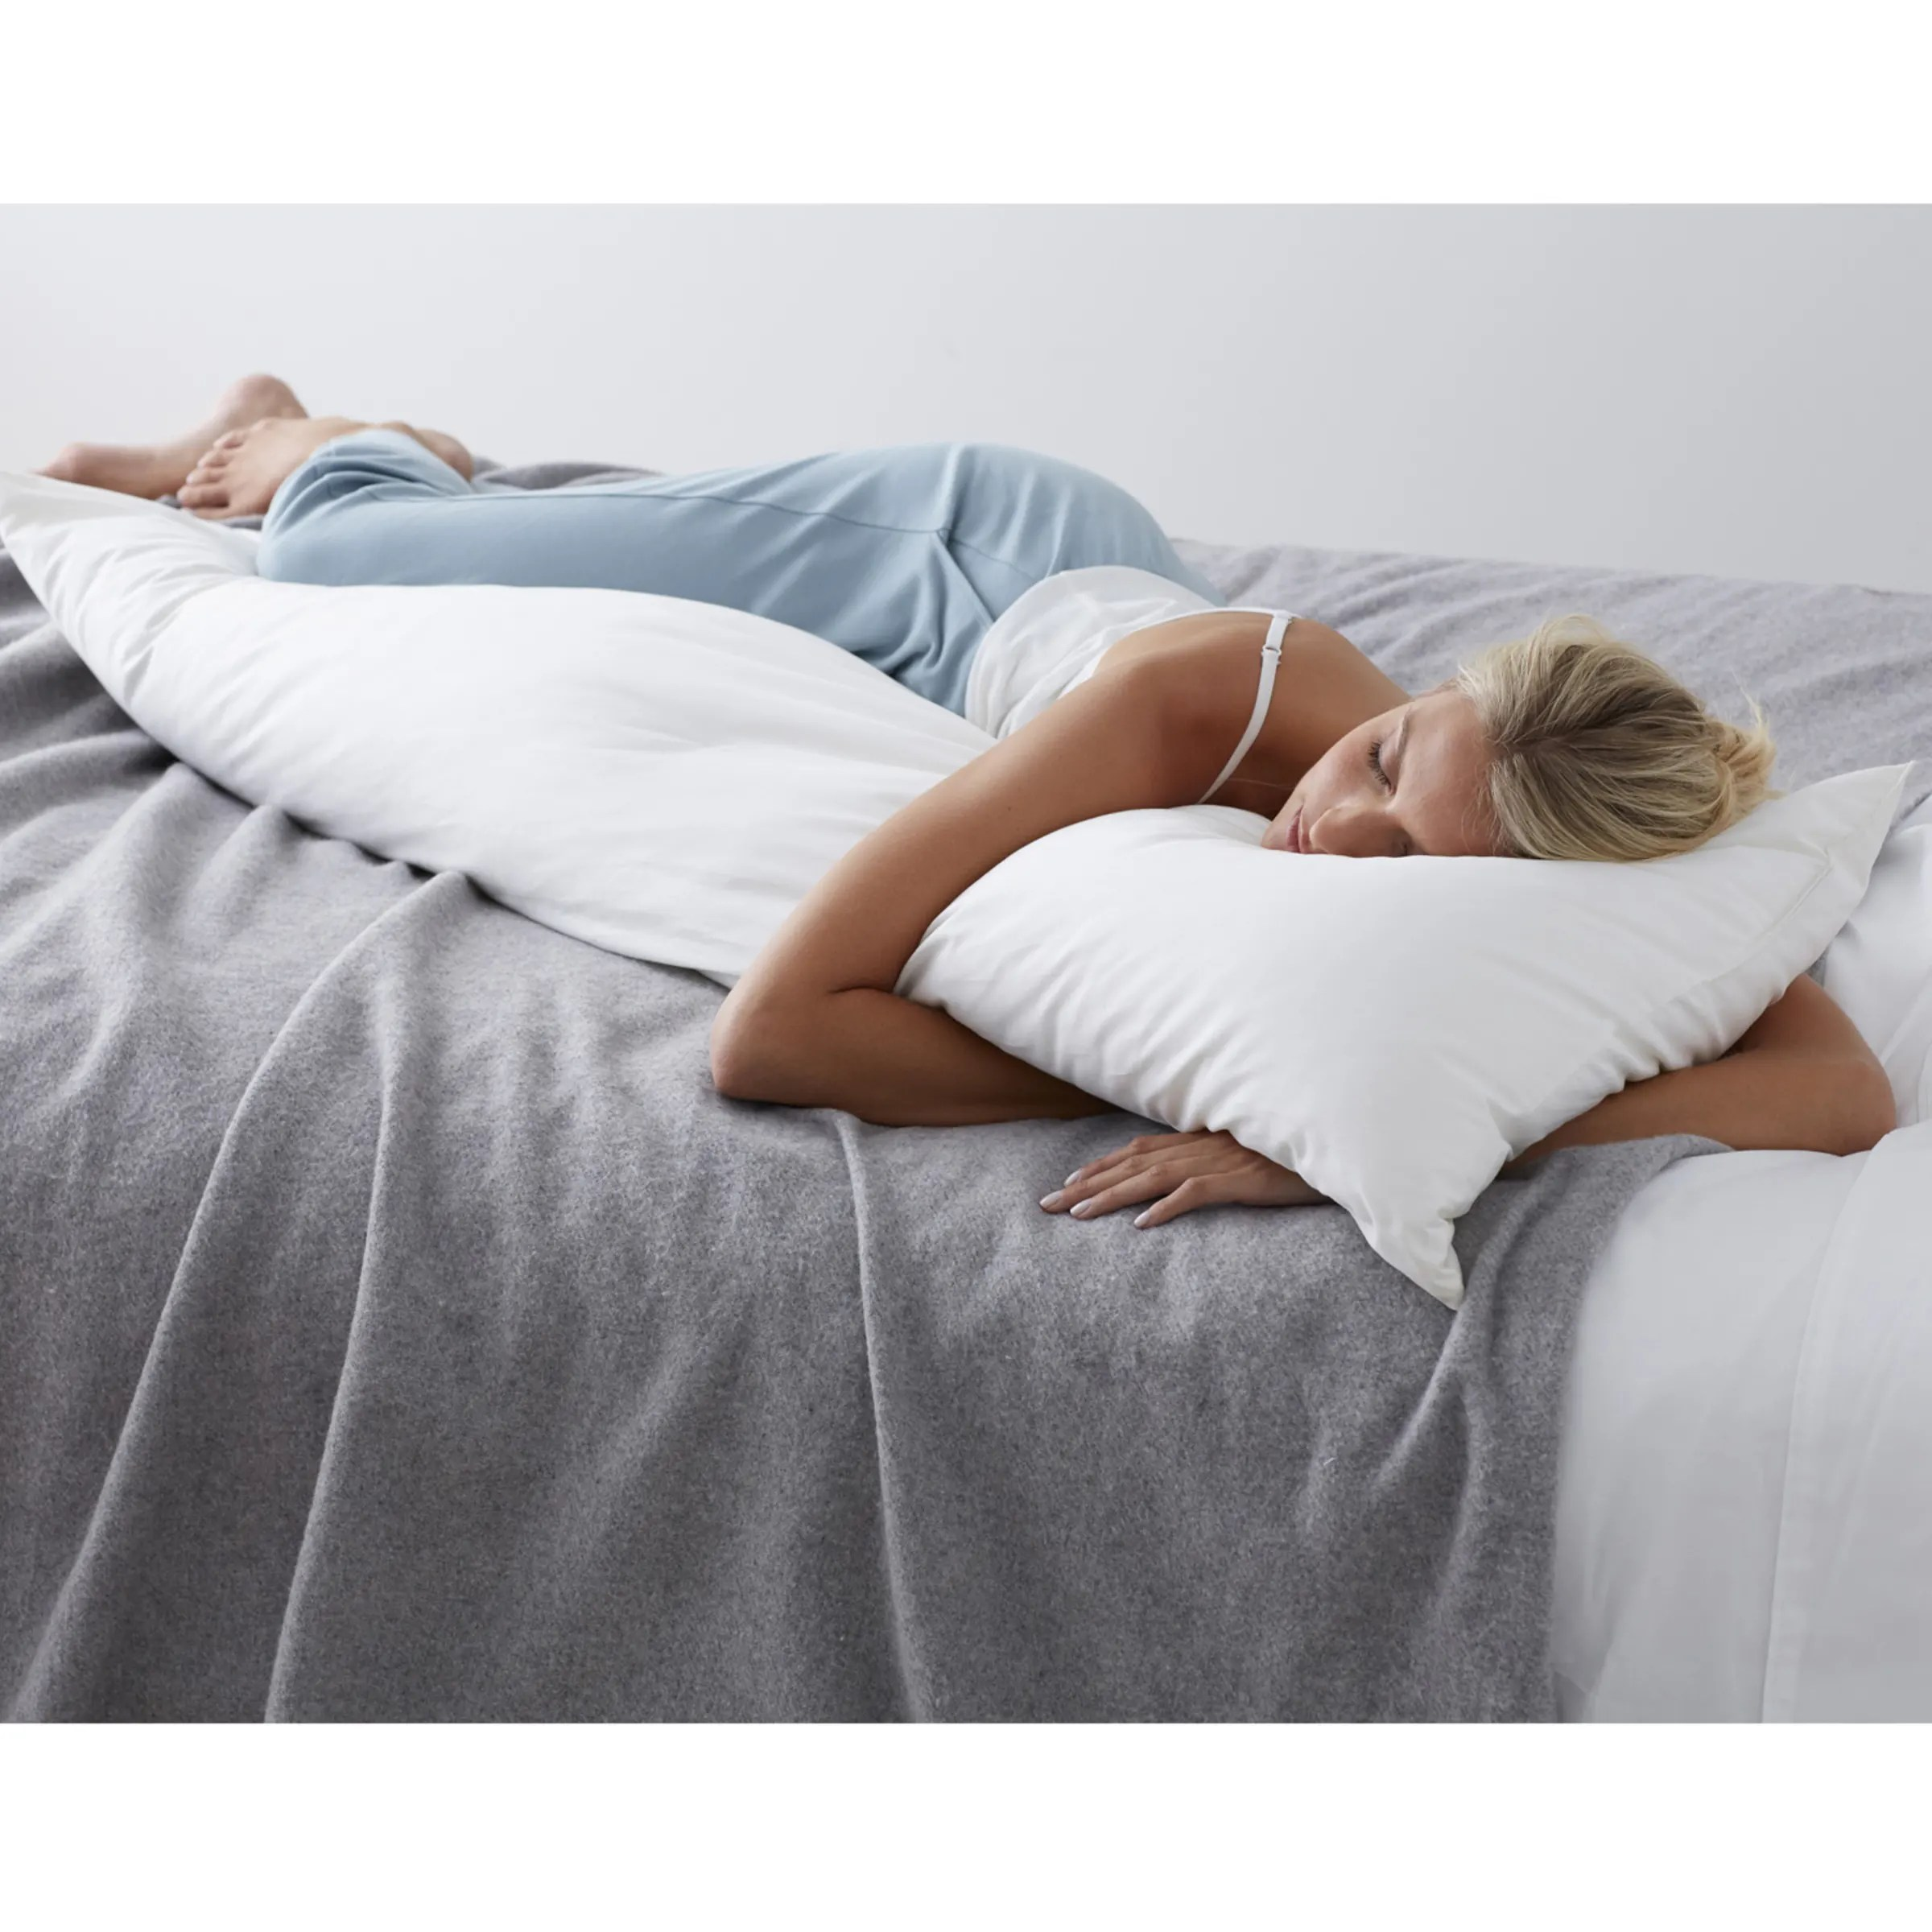 company essentials feather and down firm density body pillow insert